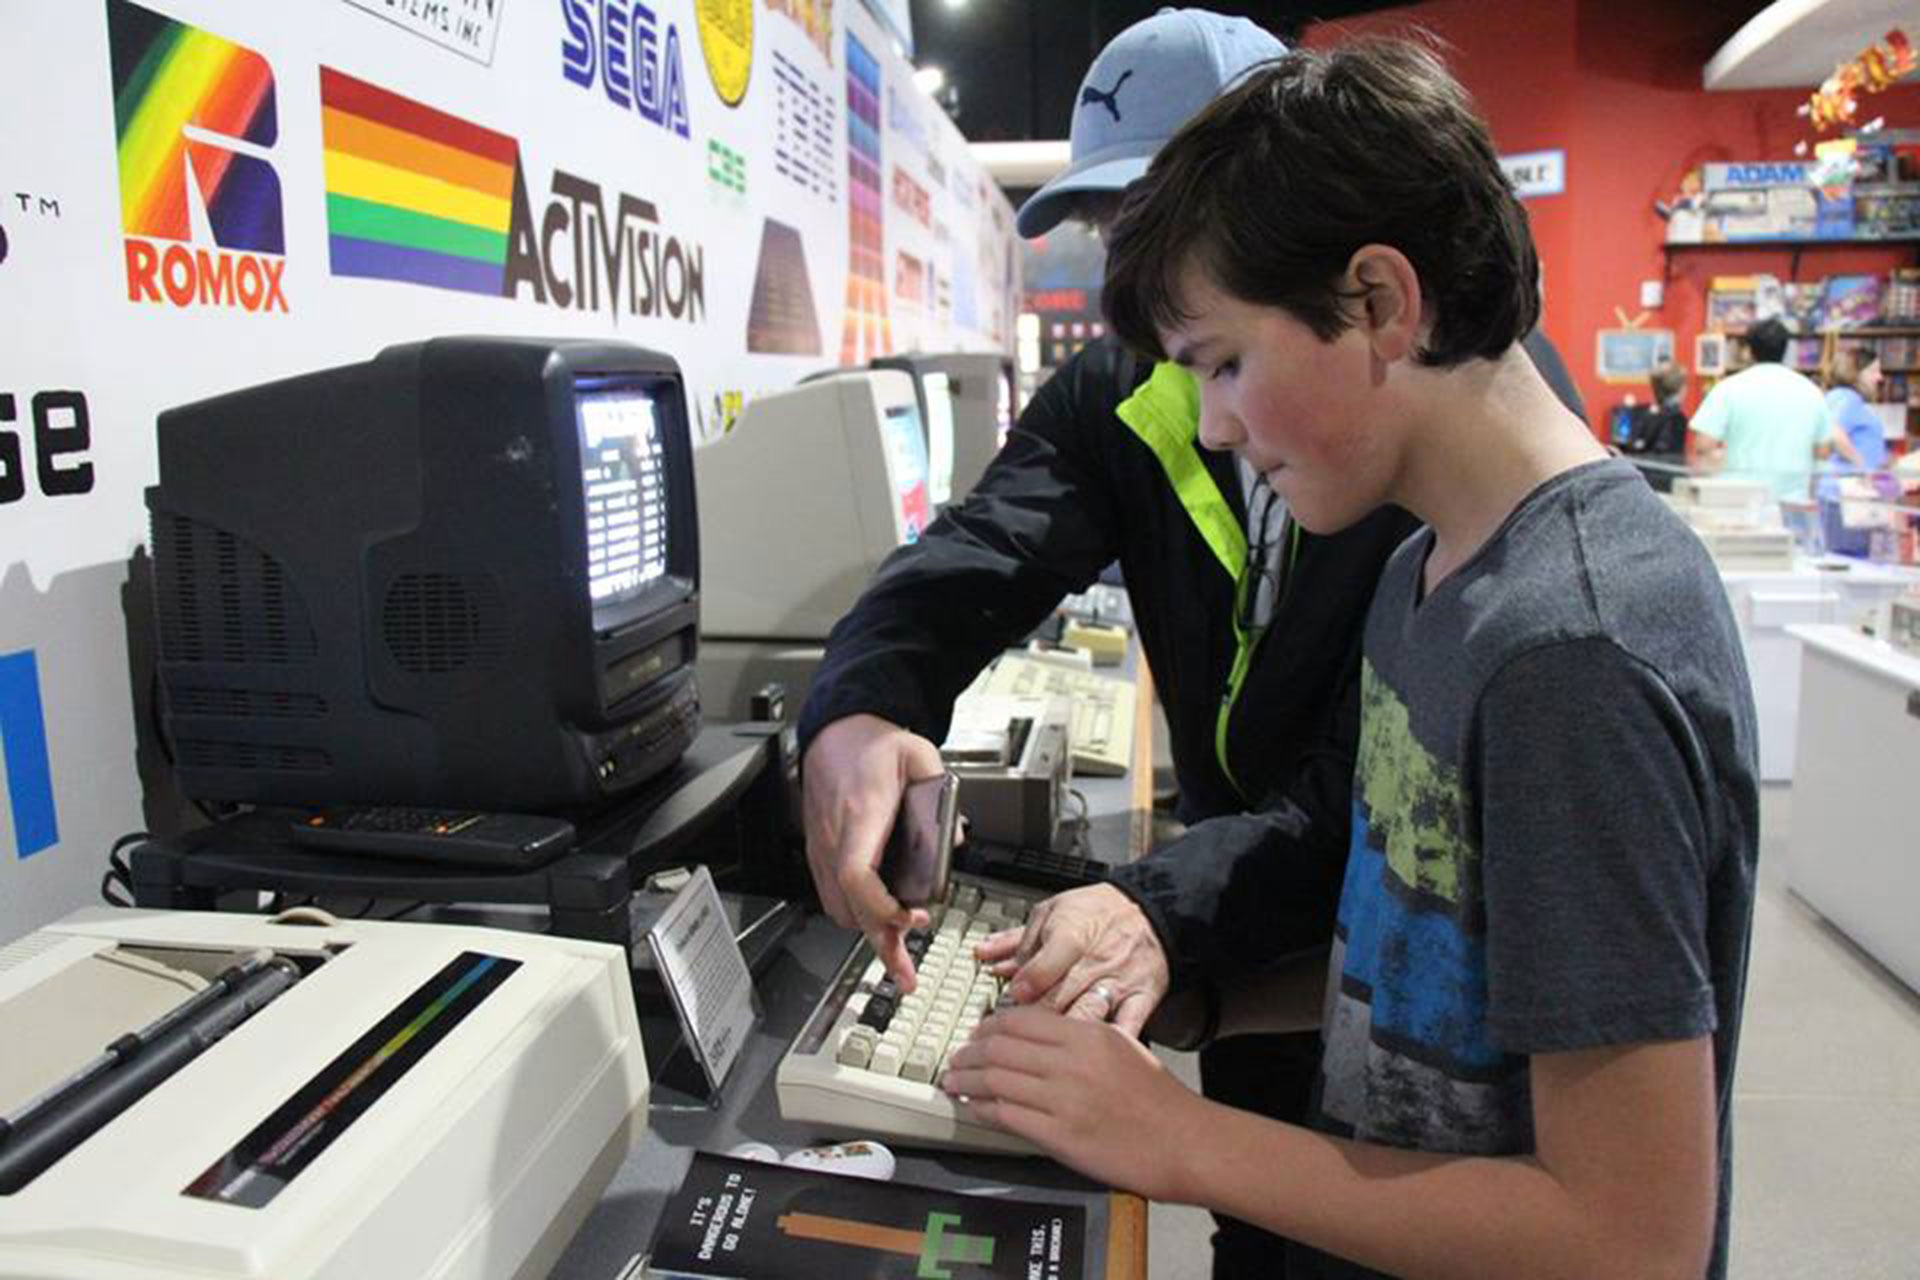 National Videogame Museum in Frisco